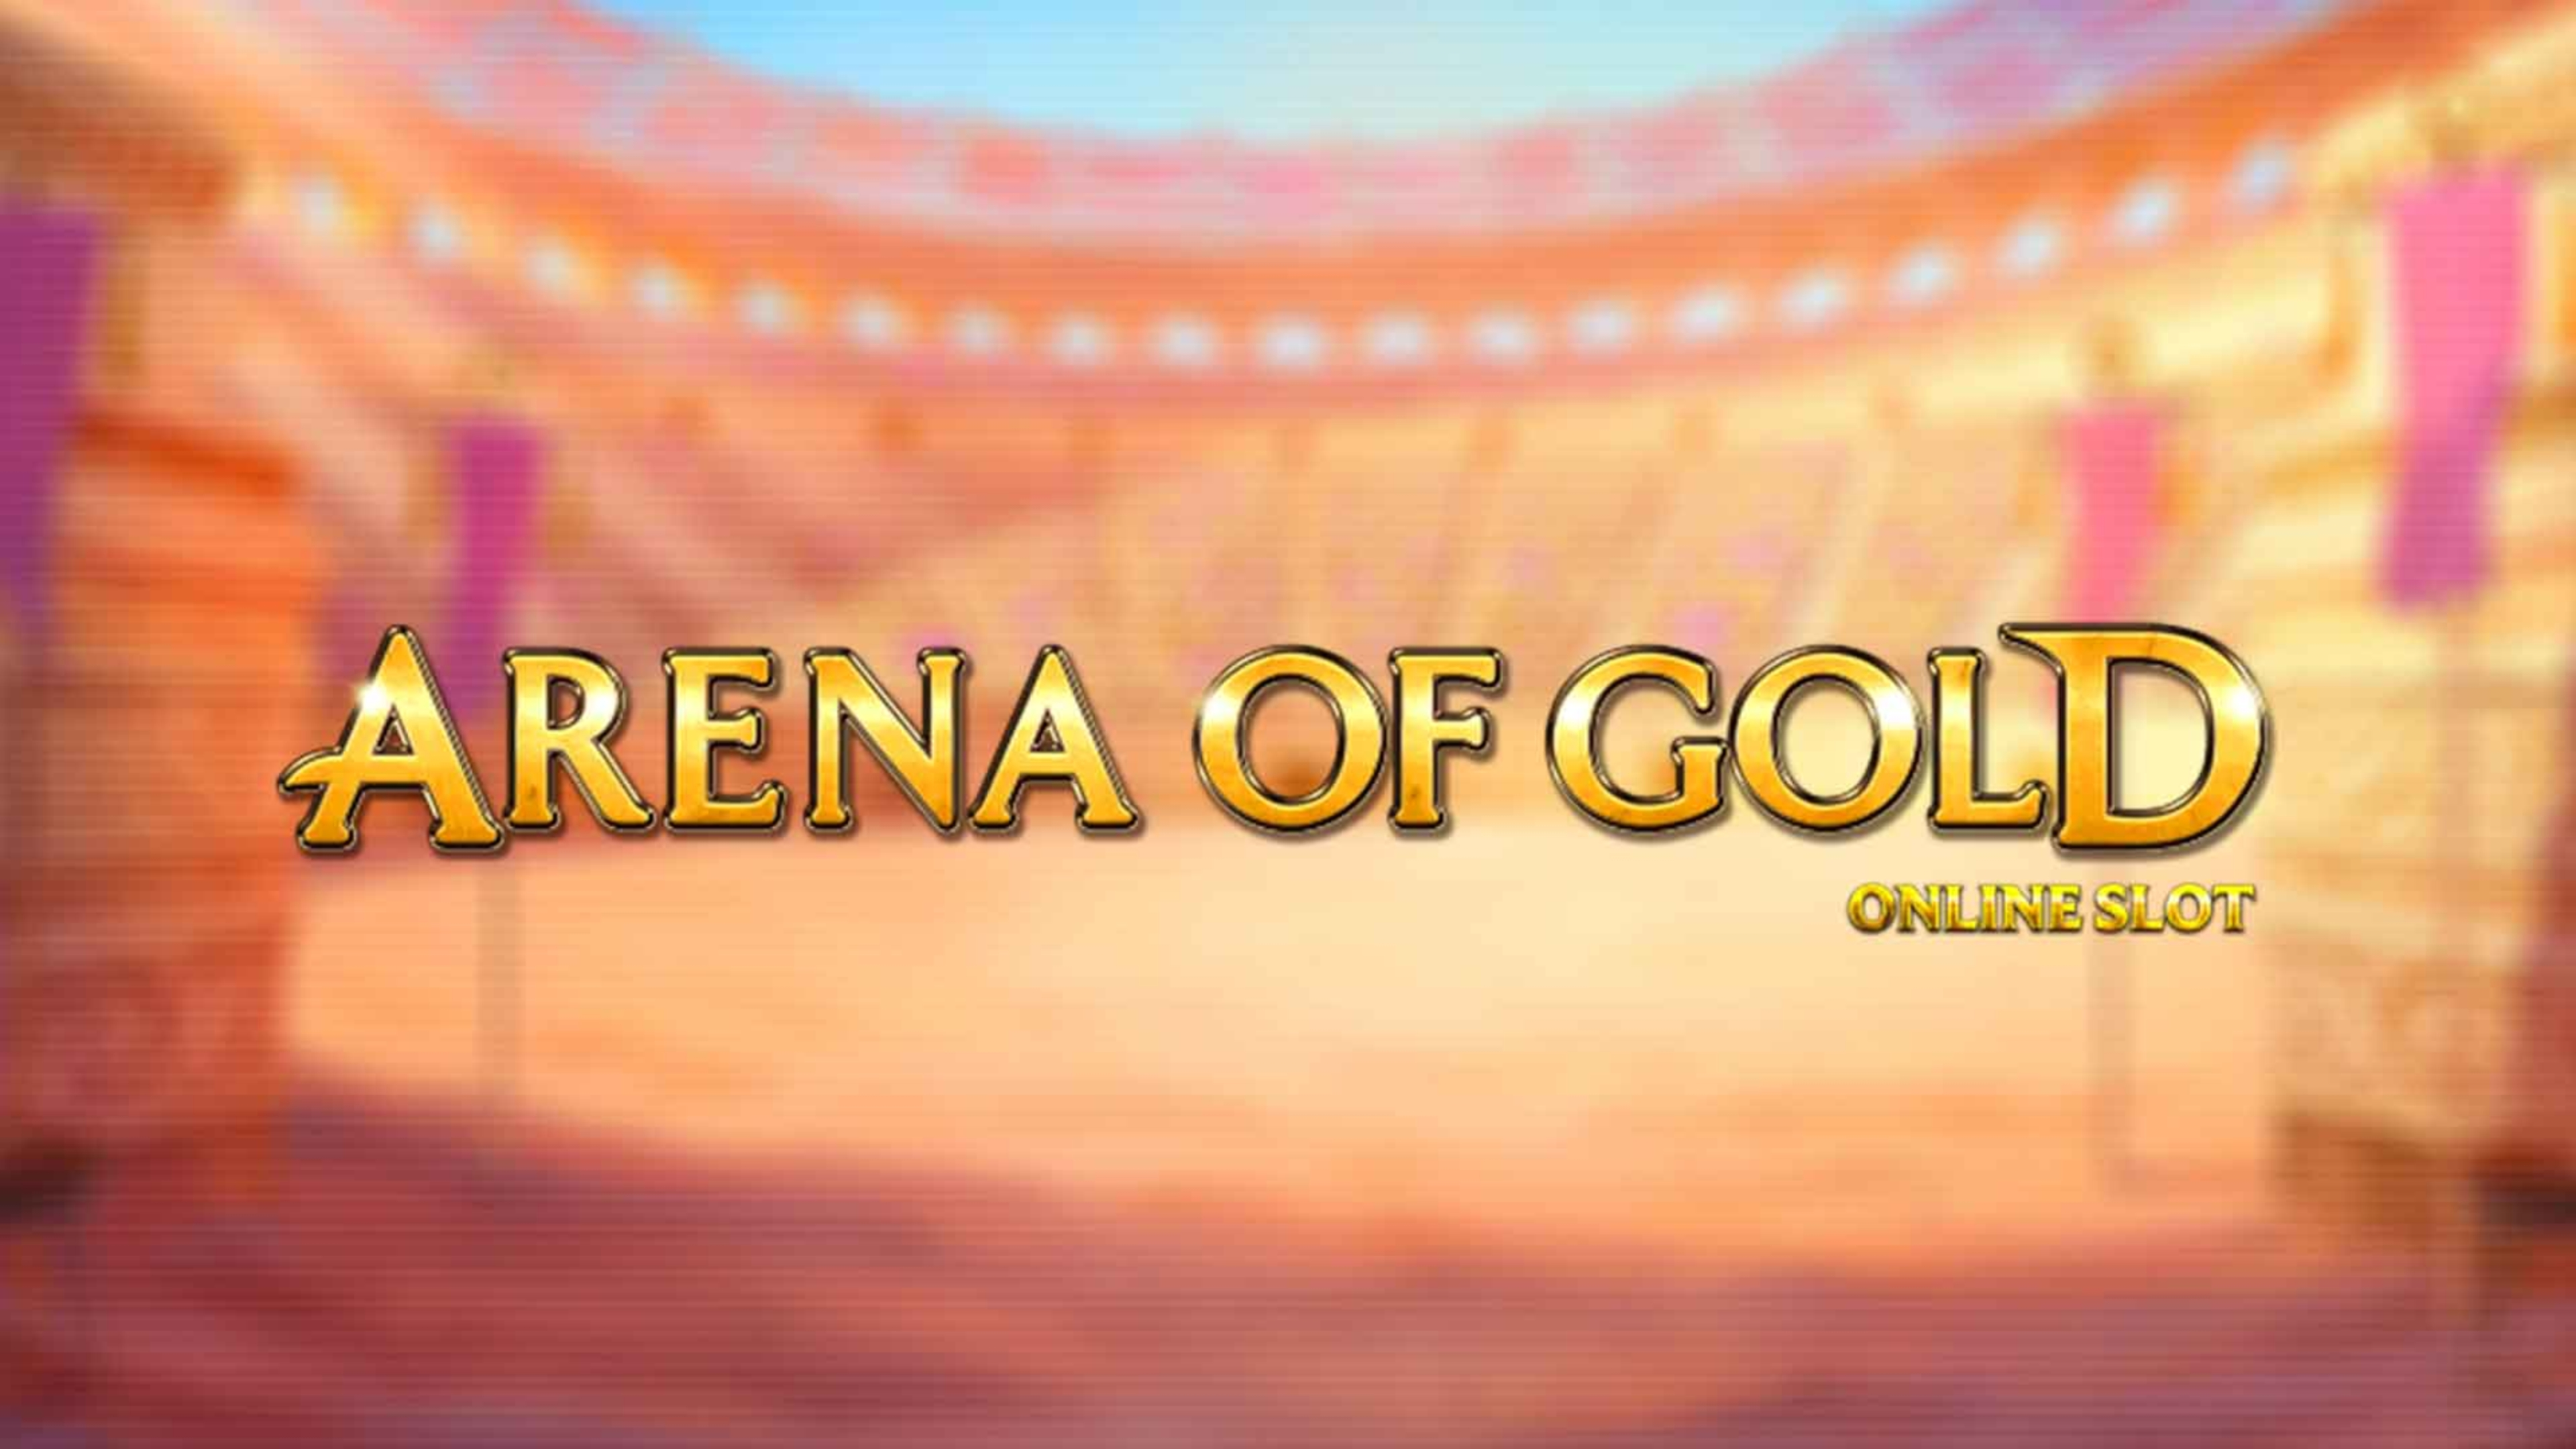 The Arena of Gold Online Slot Demo Game by All41 Studios